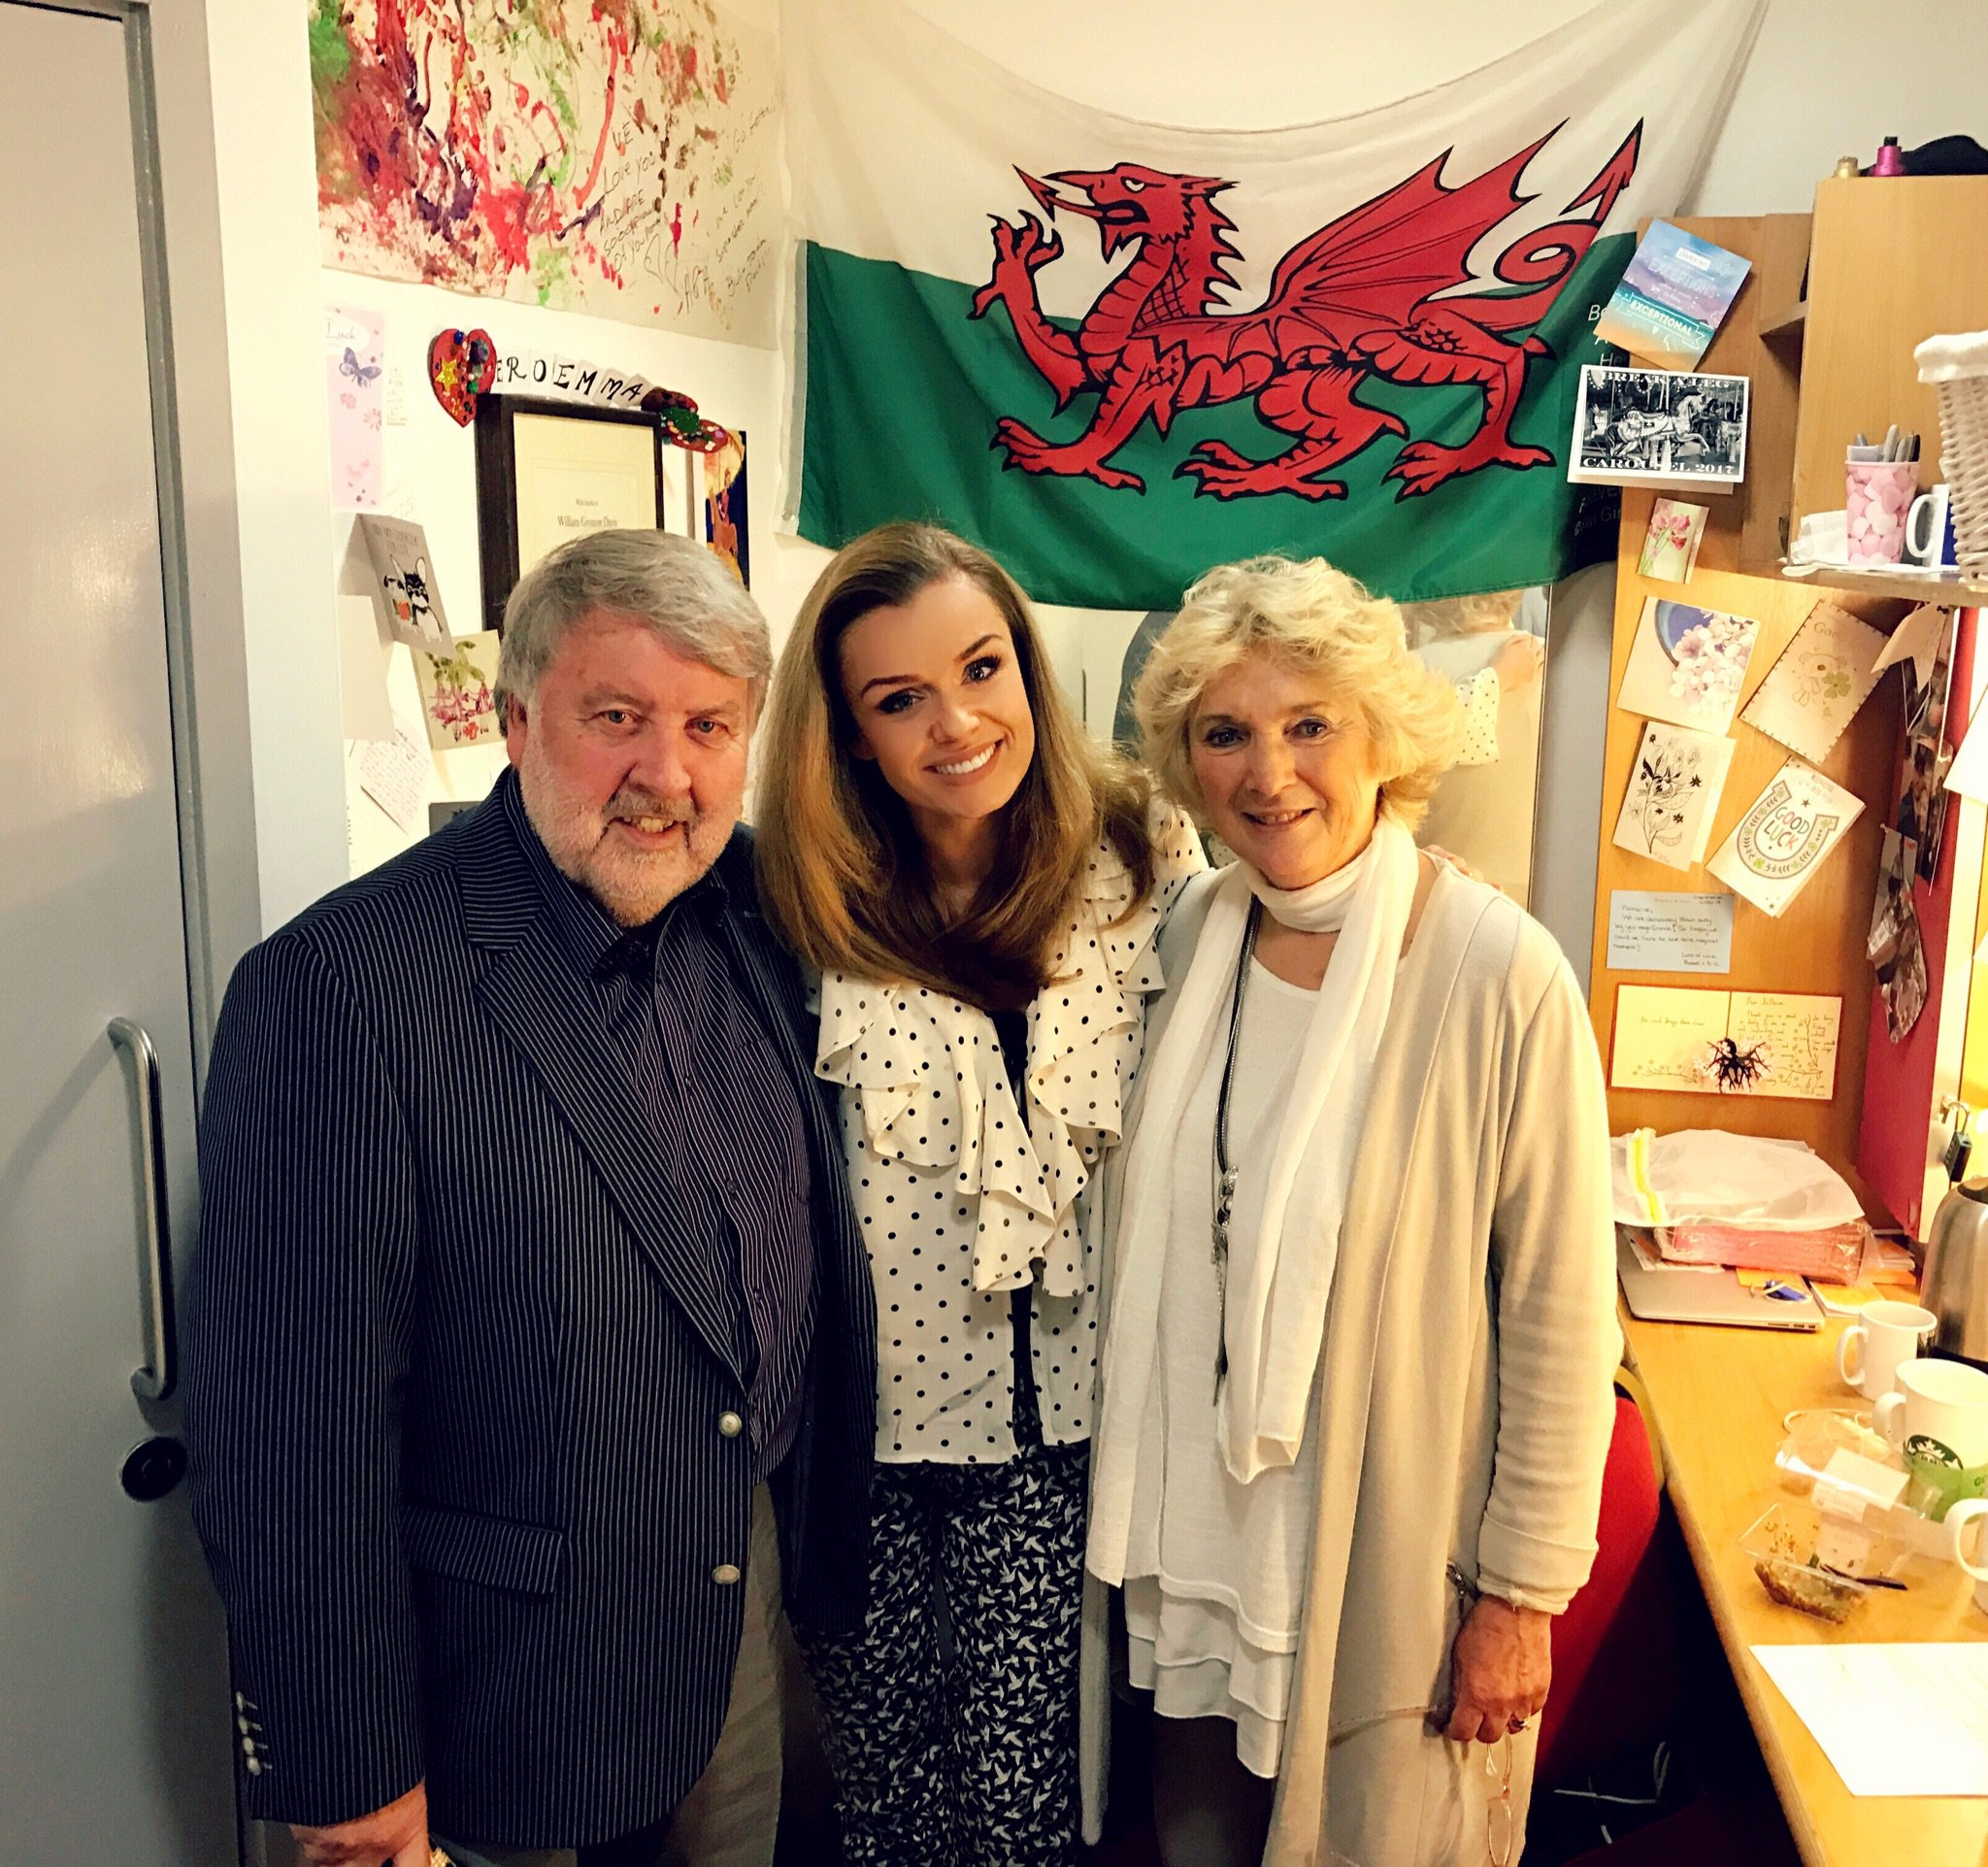 Just lovely having Welsh legend #RoyNoble and his wonderful wife Elaine at today's Matinee #Carousel https://t.co/WZiWbketyv